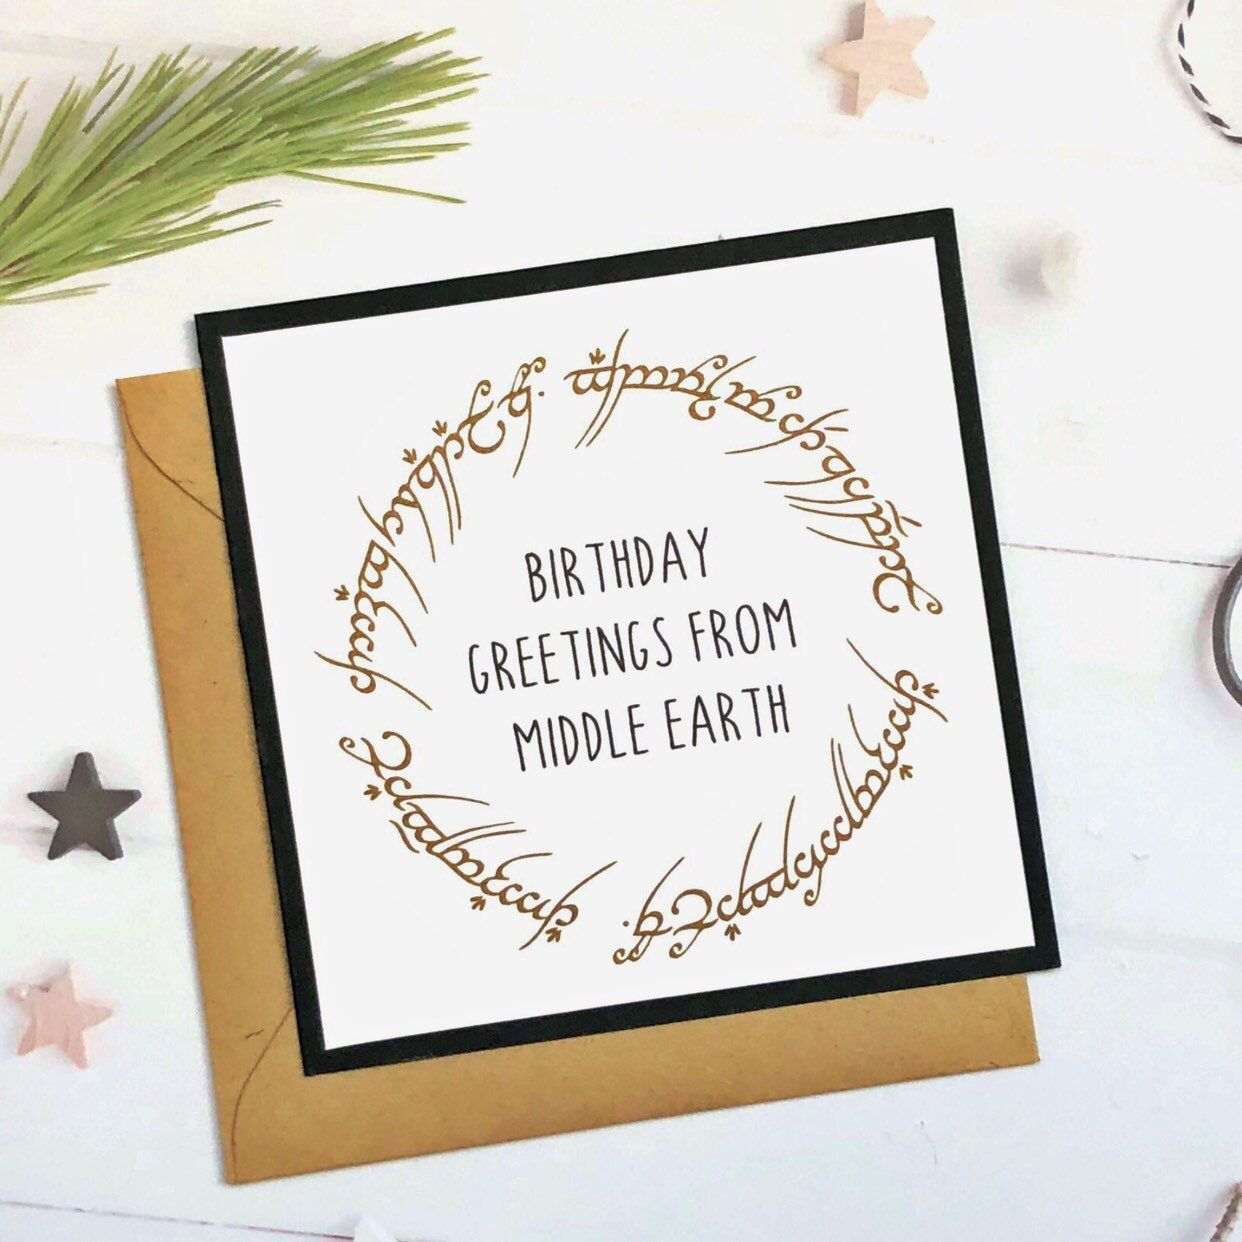 Lord Of The Rings Birthday Card Lotr Birthday Card Birthday Card Lord Lotr Birthday Cards For Boyfriend Birthday Card Messages Birthday Cards